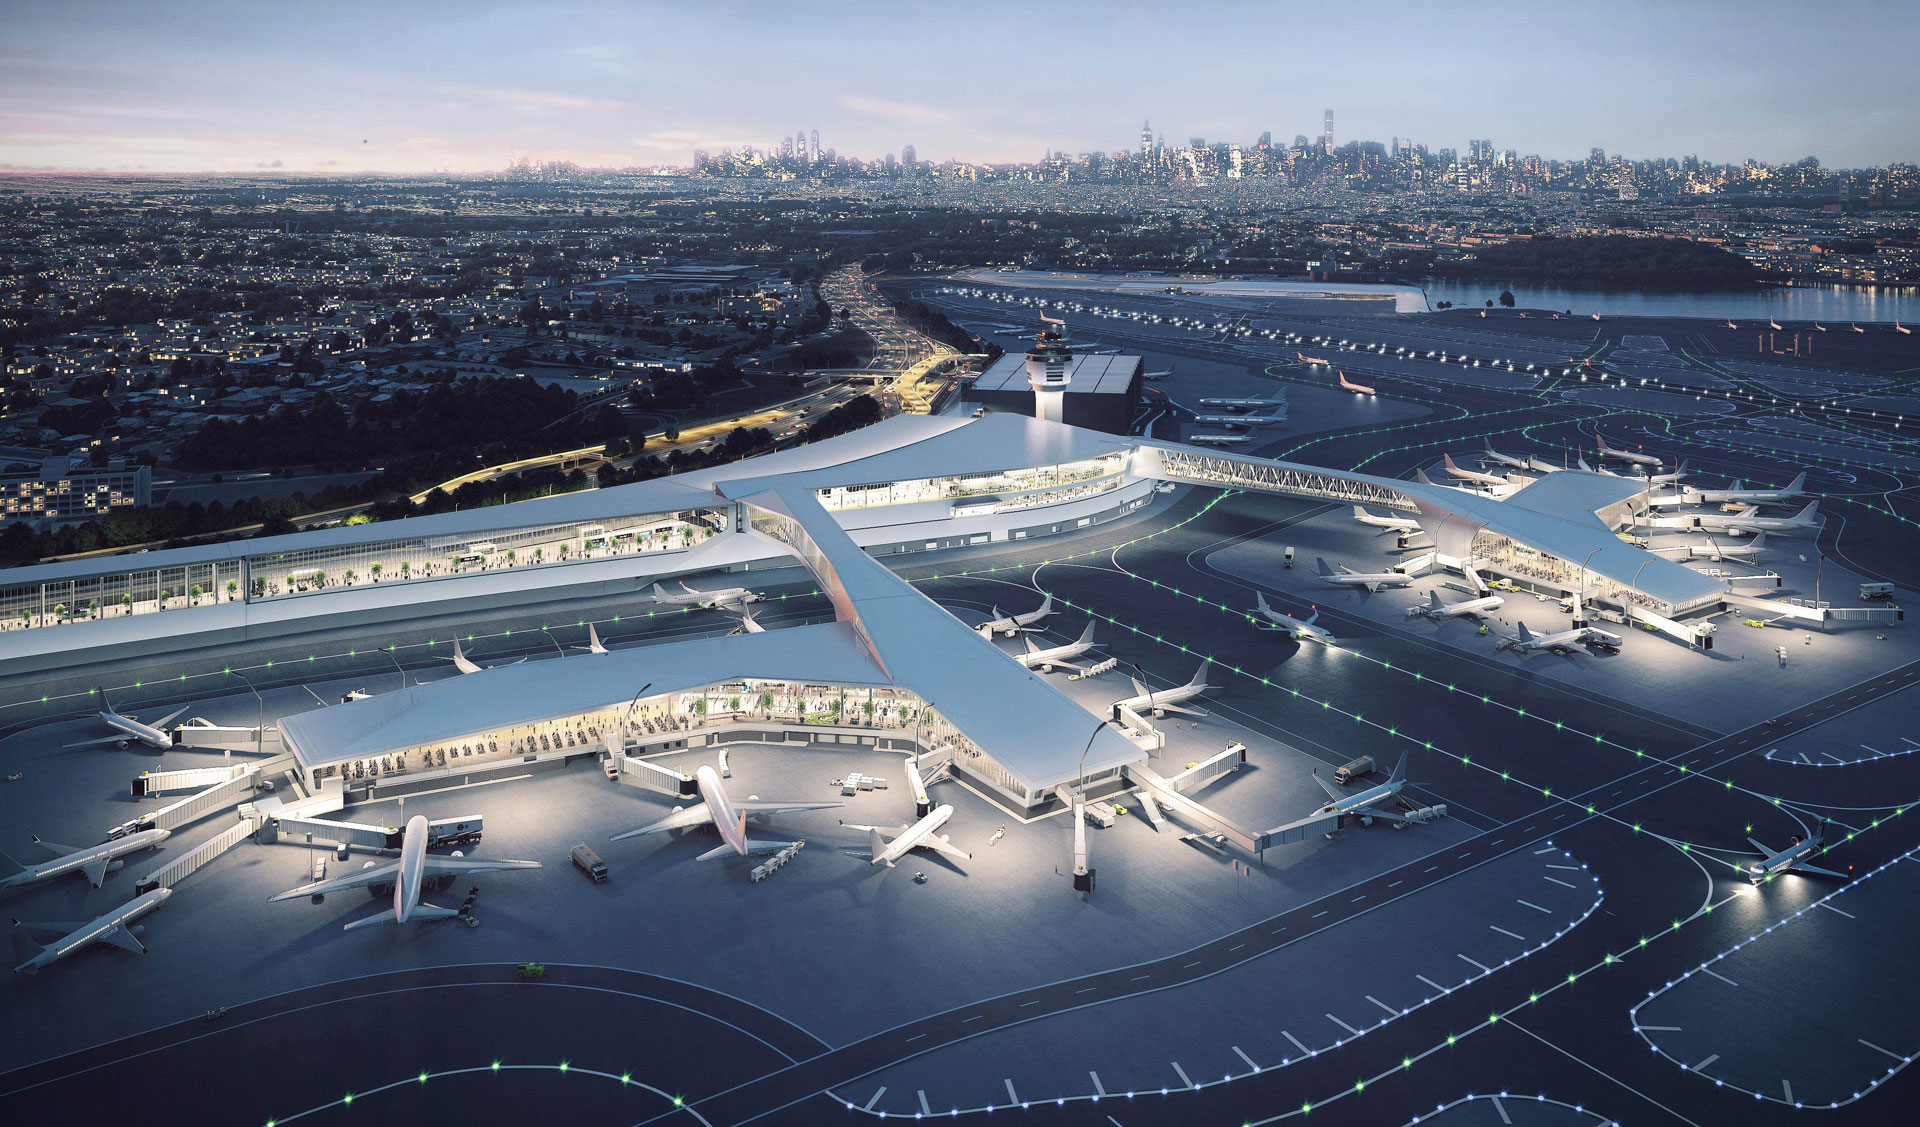 Rendering of nighttime aerial view of new Terminal B at LGA